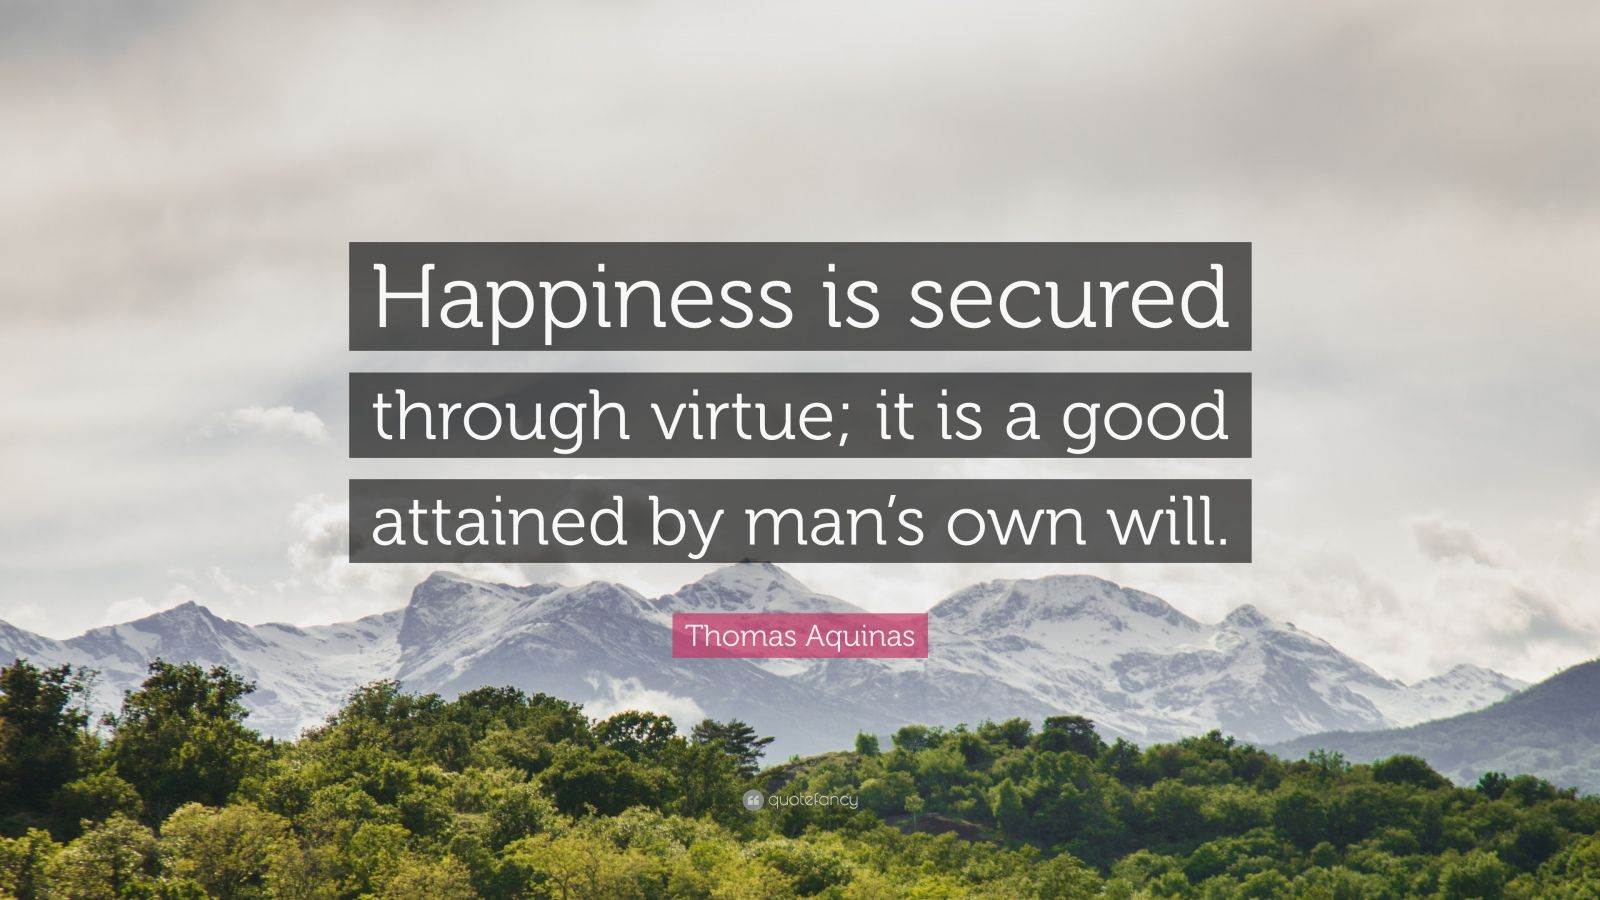 virtues virtue and better place